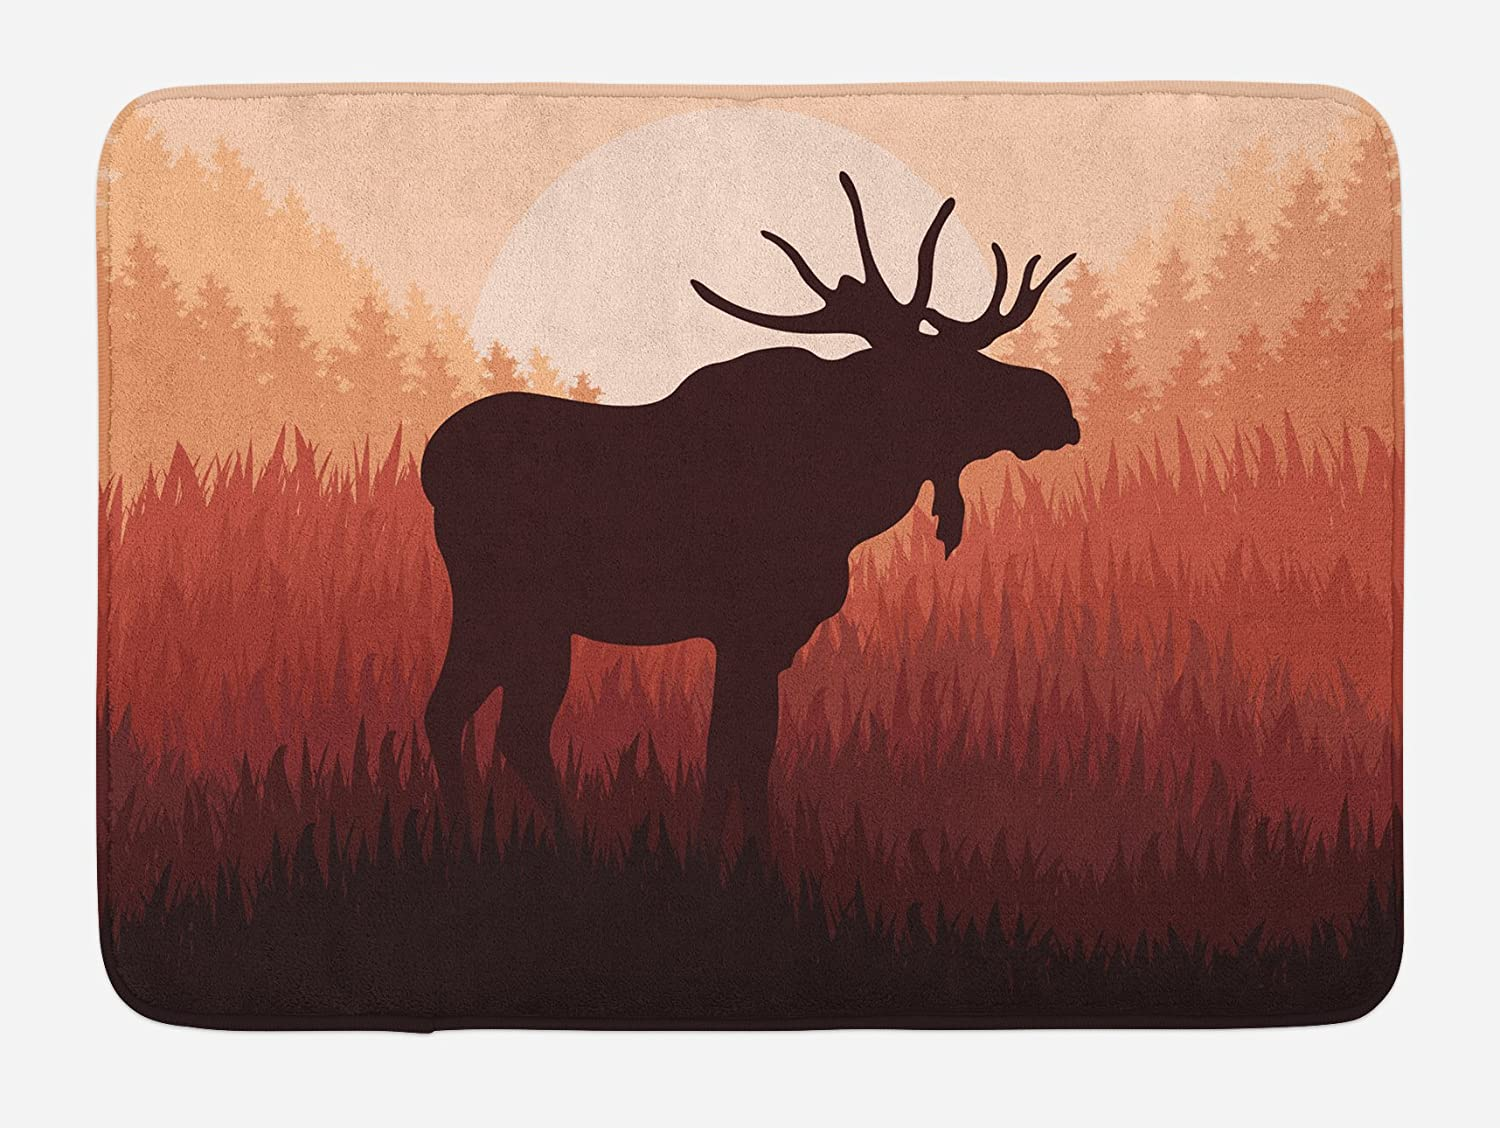 Ambesonne Moose Bath Mat, Antlers in Wild Alaska Forest Rusty Abstract Landscape Design Deer Theme Woods, Plush Bathroom Decor Mat with Non Slip Backing, 29.5